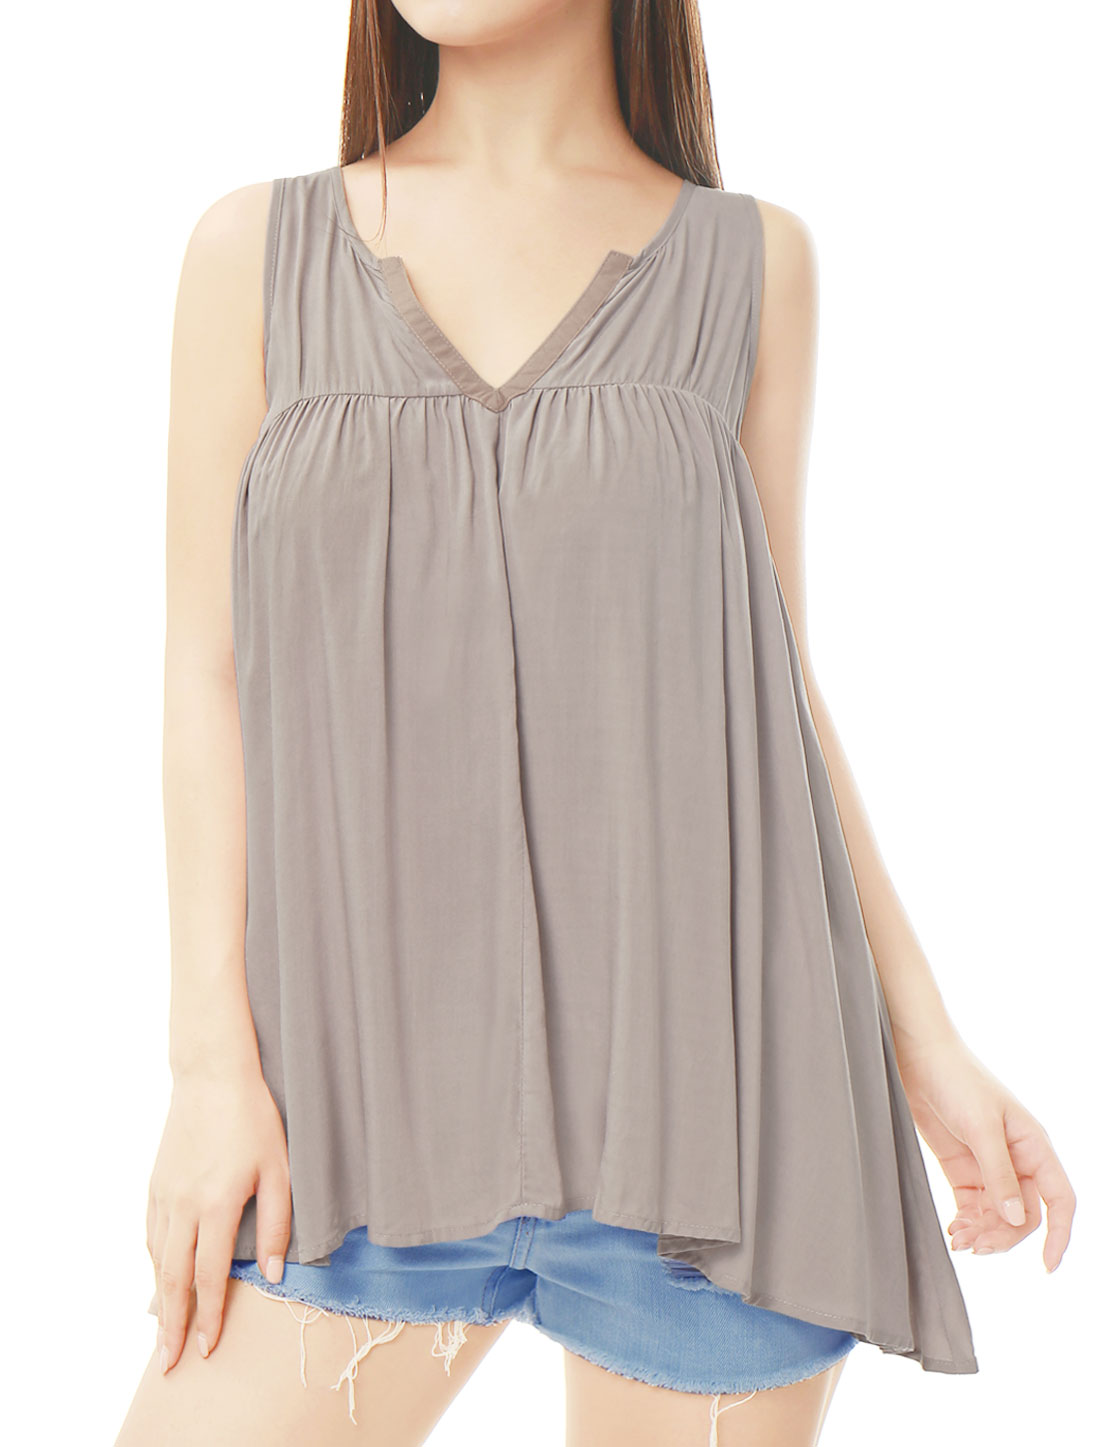 Women V Neck Irregular Hem Loose Sleeveless Flowy Top Gray XL